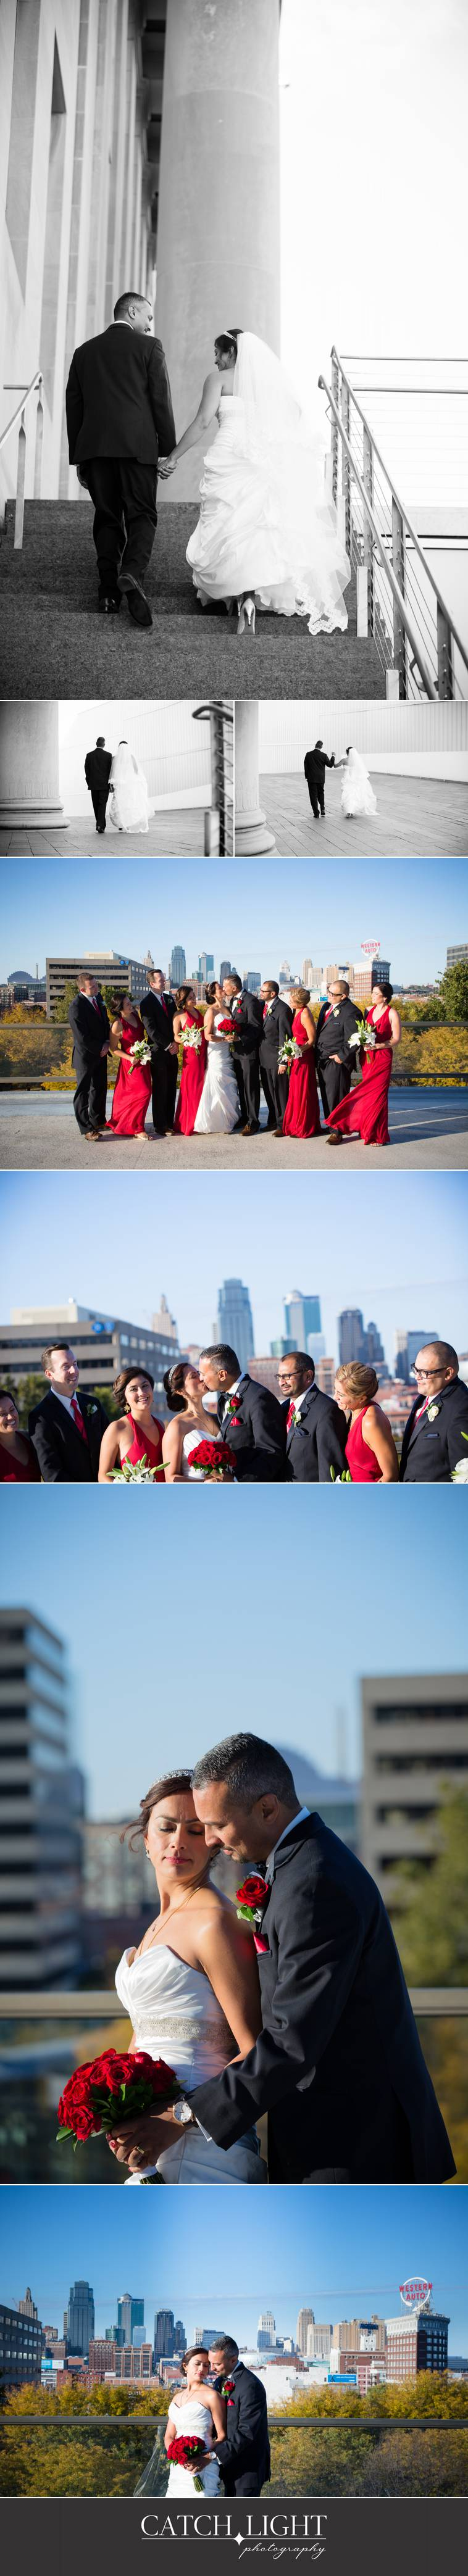 kansas city wedding photography 12